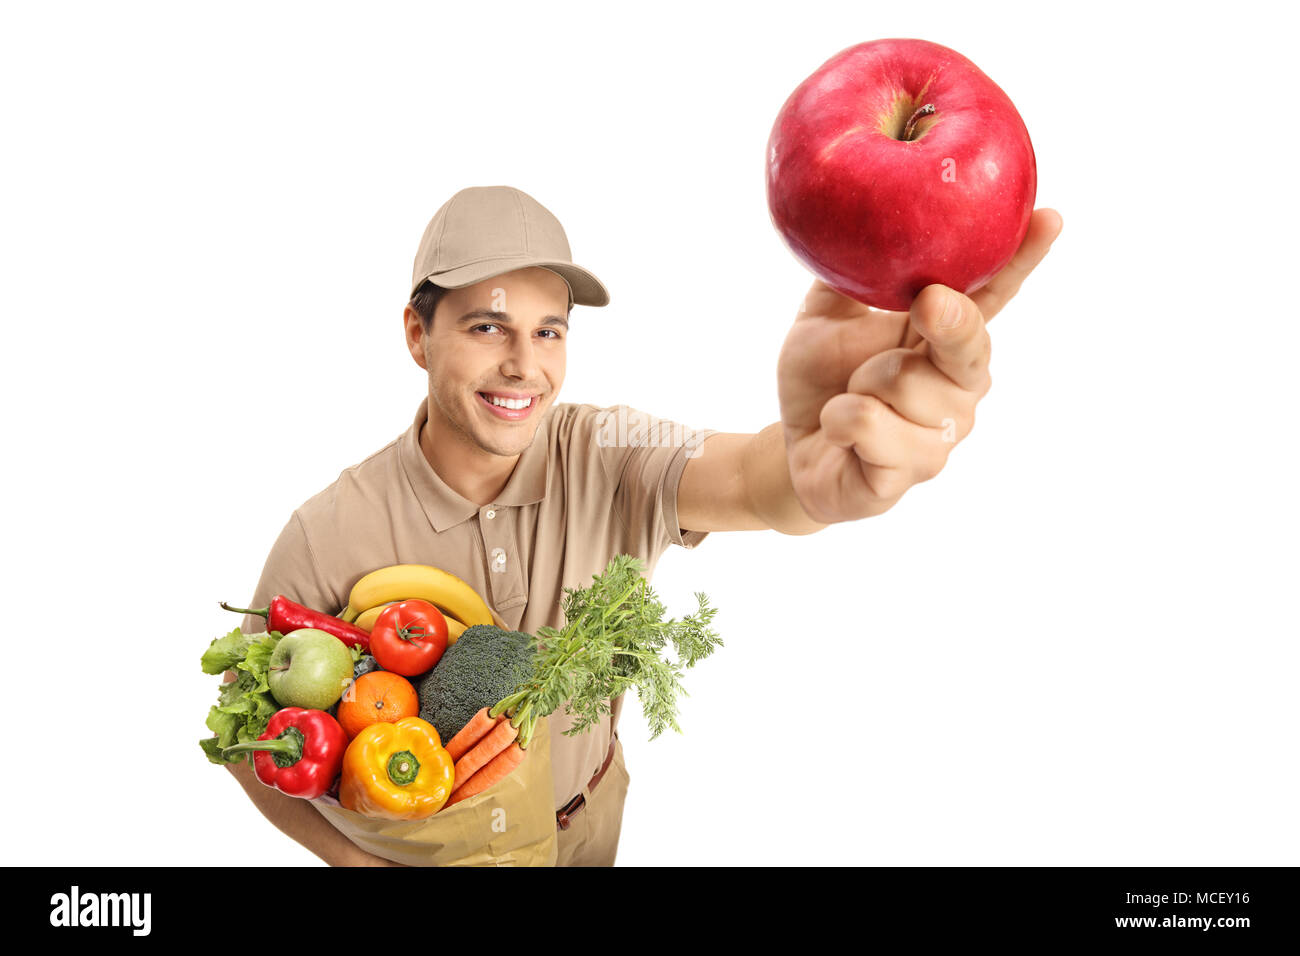 Delivery man with a bag of groceries and an apple isolated on white background - Stock Image